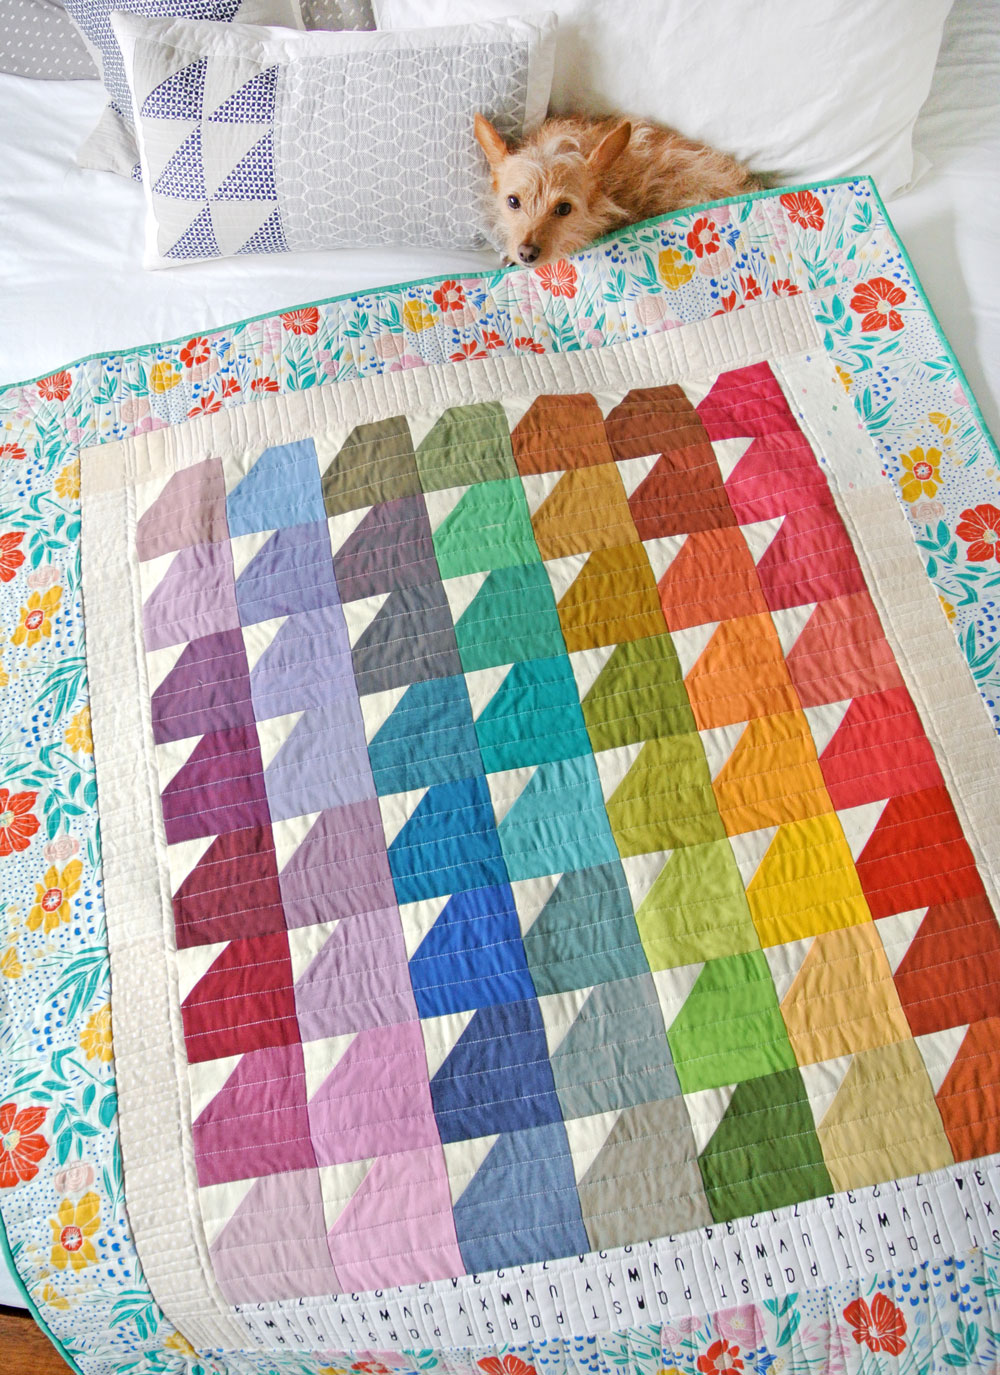 Step by step how to care for a new quilt. Are you giving a quilt away? Easy instructions and a printable card on how to wash and care for a vintage quilt and also how to wash a baby quilt.